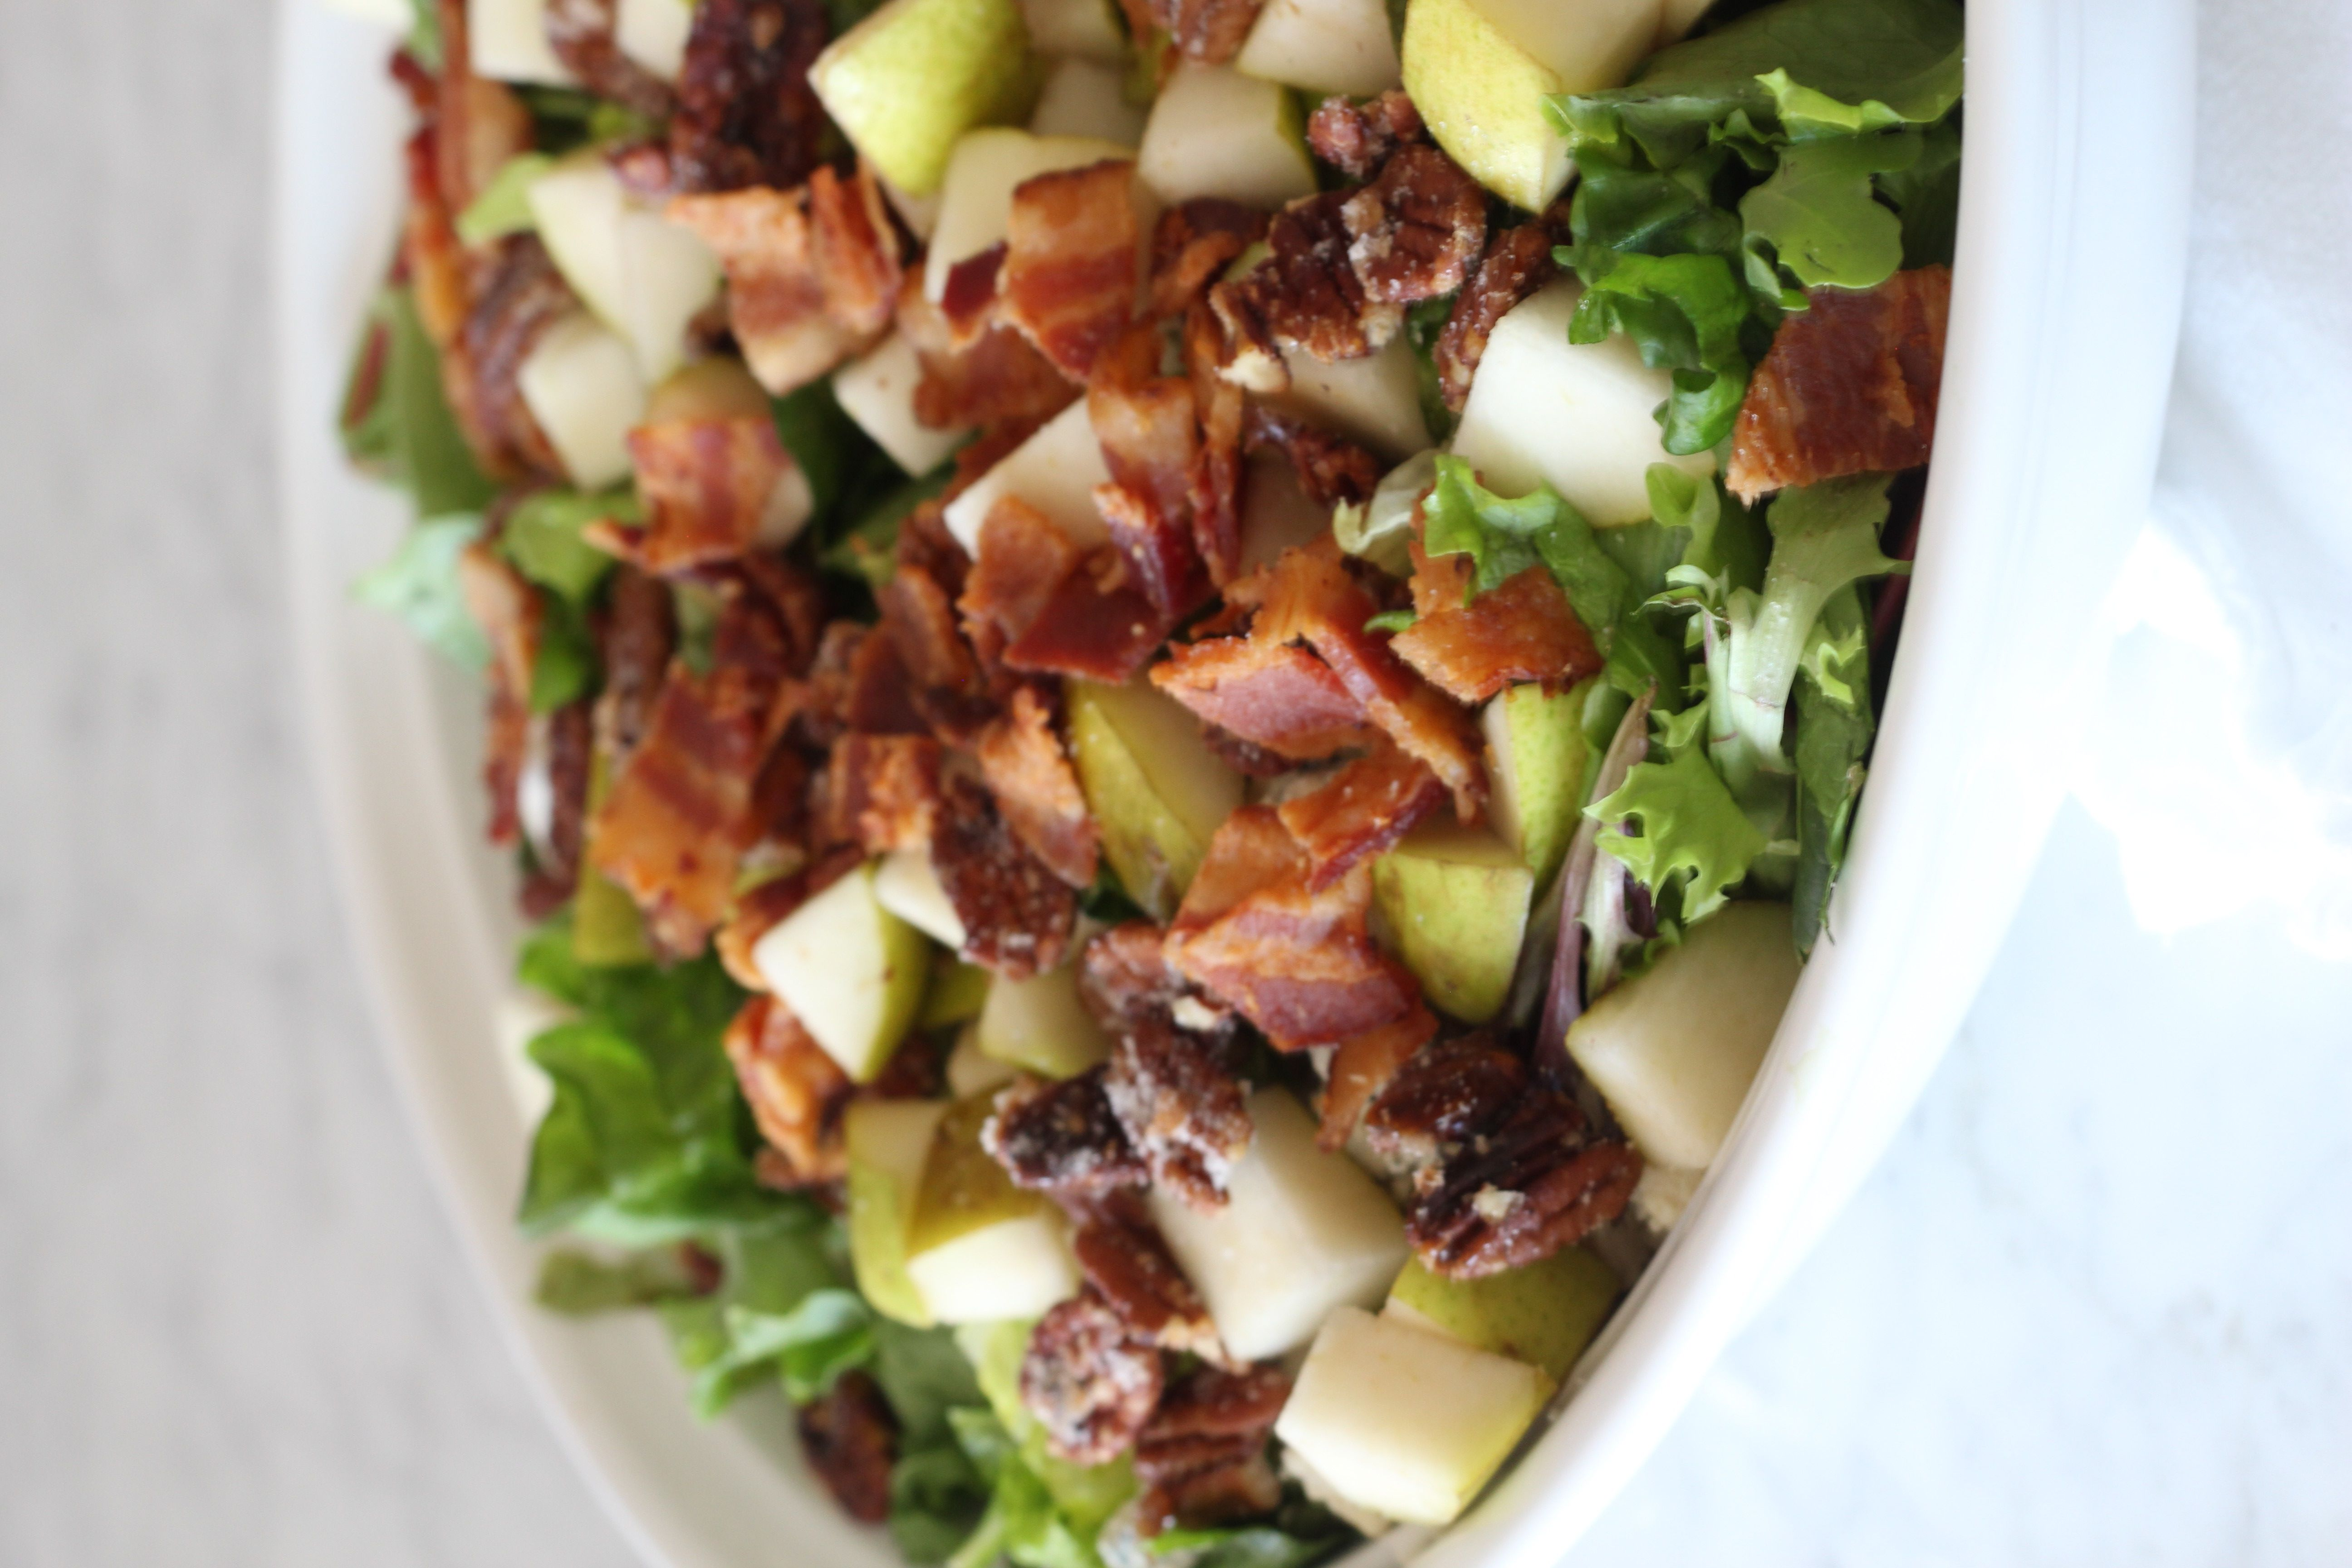 Pear And Pecan Salad With Sweet Red Wine Vinaigrette A Bountiful Kitchen Recipe Pecan Salad Red Wine Vinaigrette Sweet Red Wines [ 3456 x 5184 Pixel ]